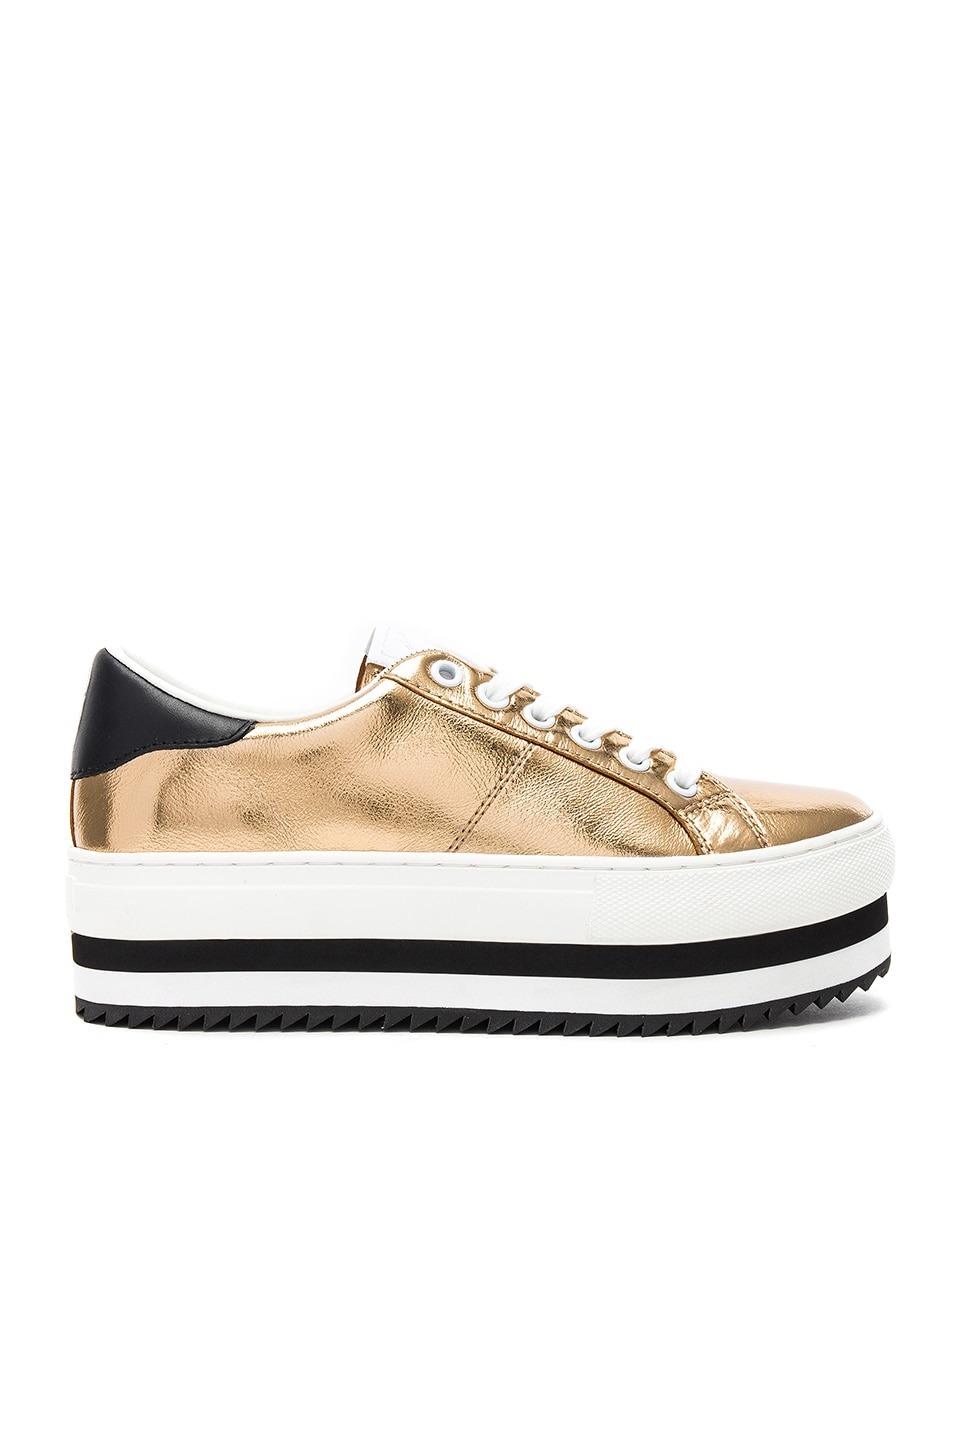 065d0327db66 Marc Jacobs Grand Platform Sneaker in Gold